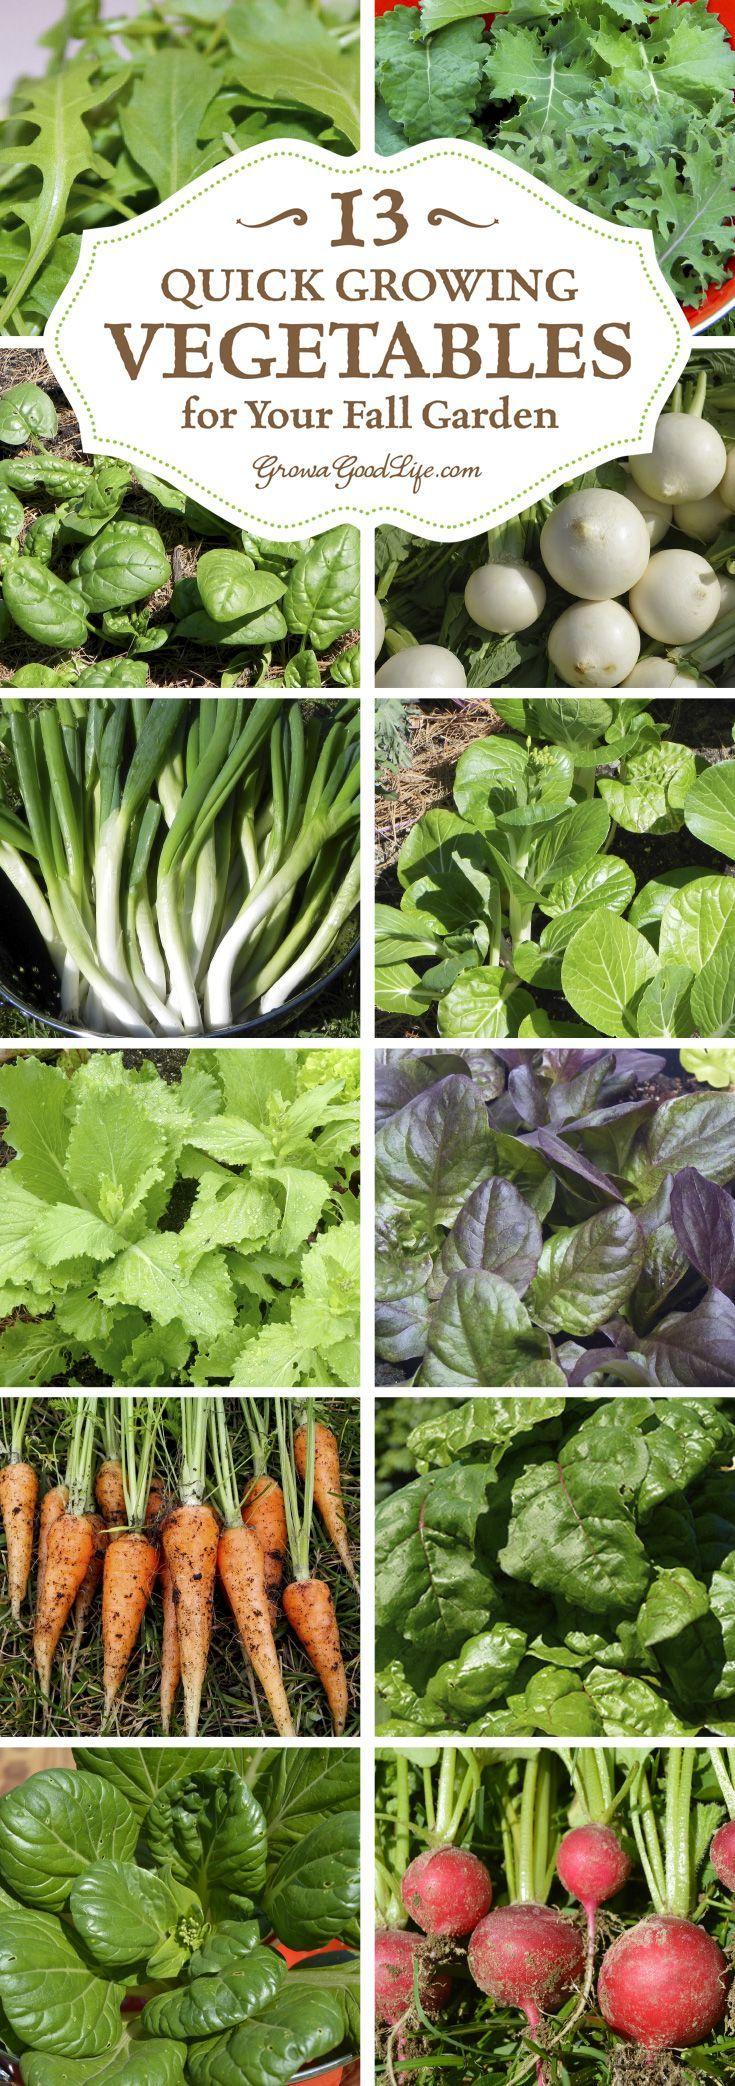 Growing fall vegetables in colder climates can be a gamble, but these crops mature quickly so you can grow more food in your fall garden.